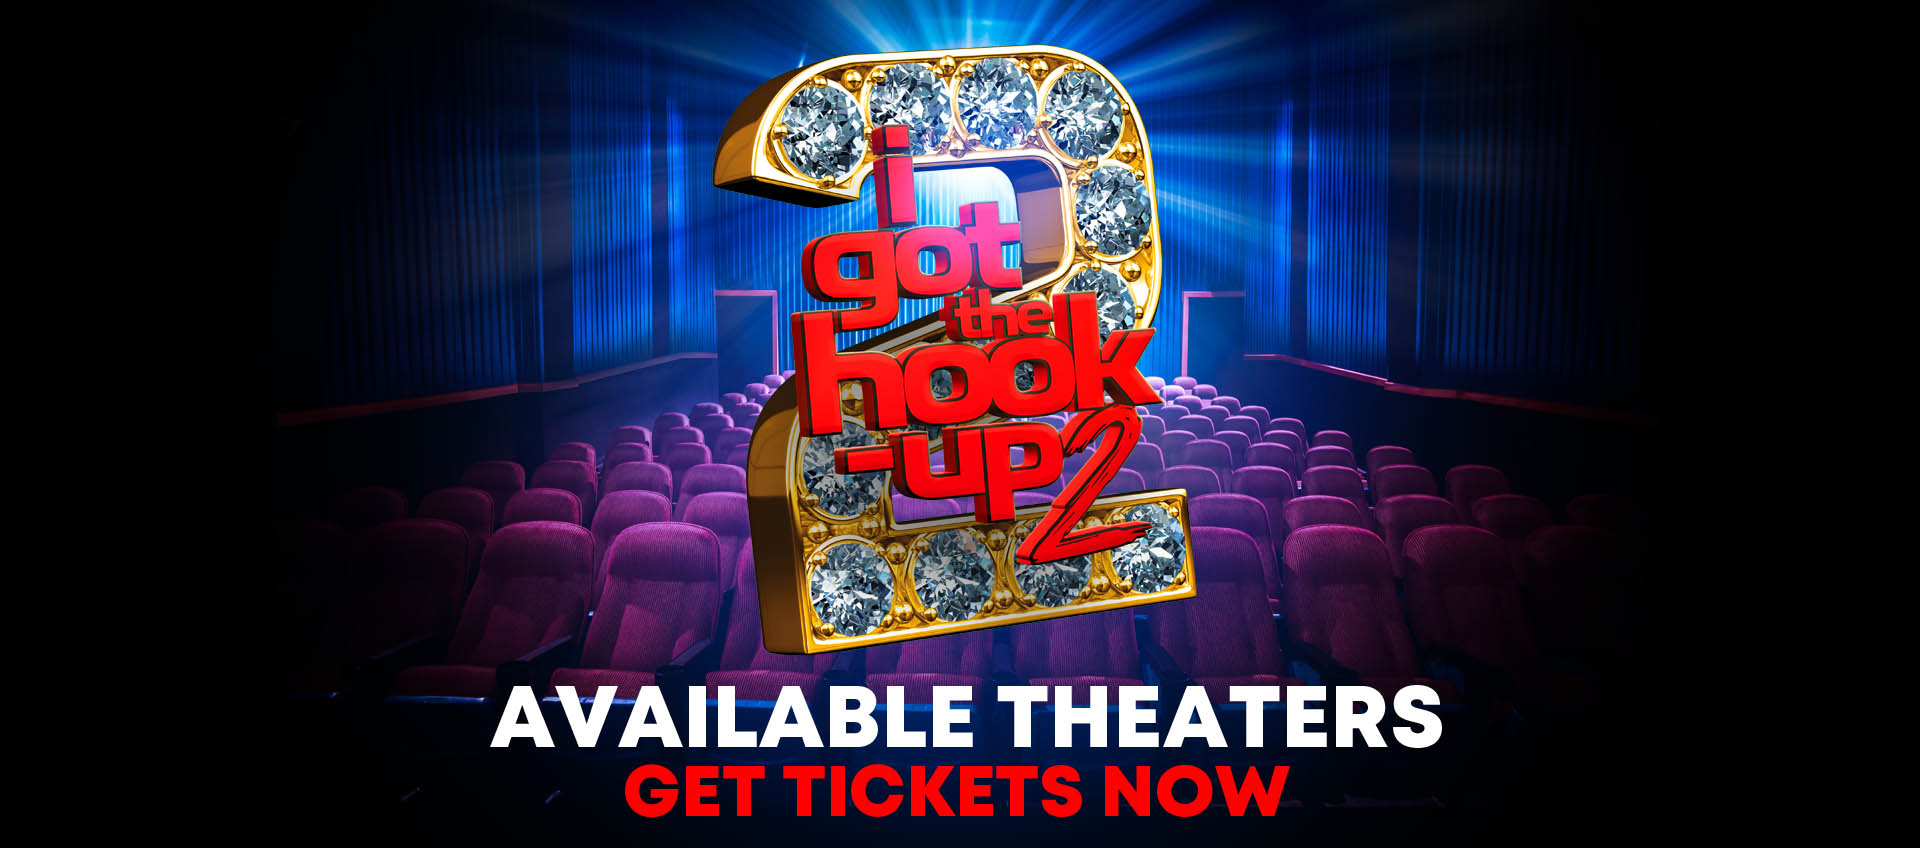 Stonecrest Mall Amc >> Theaters & Showtimes – I Got The Hook Up 2